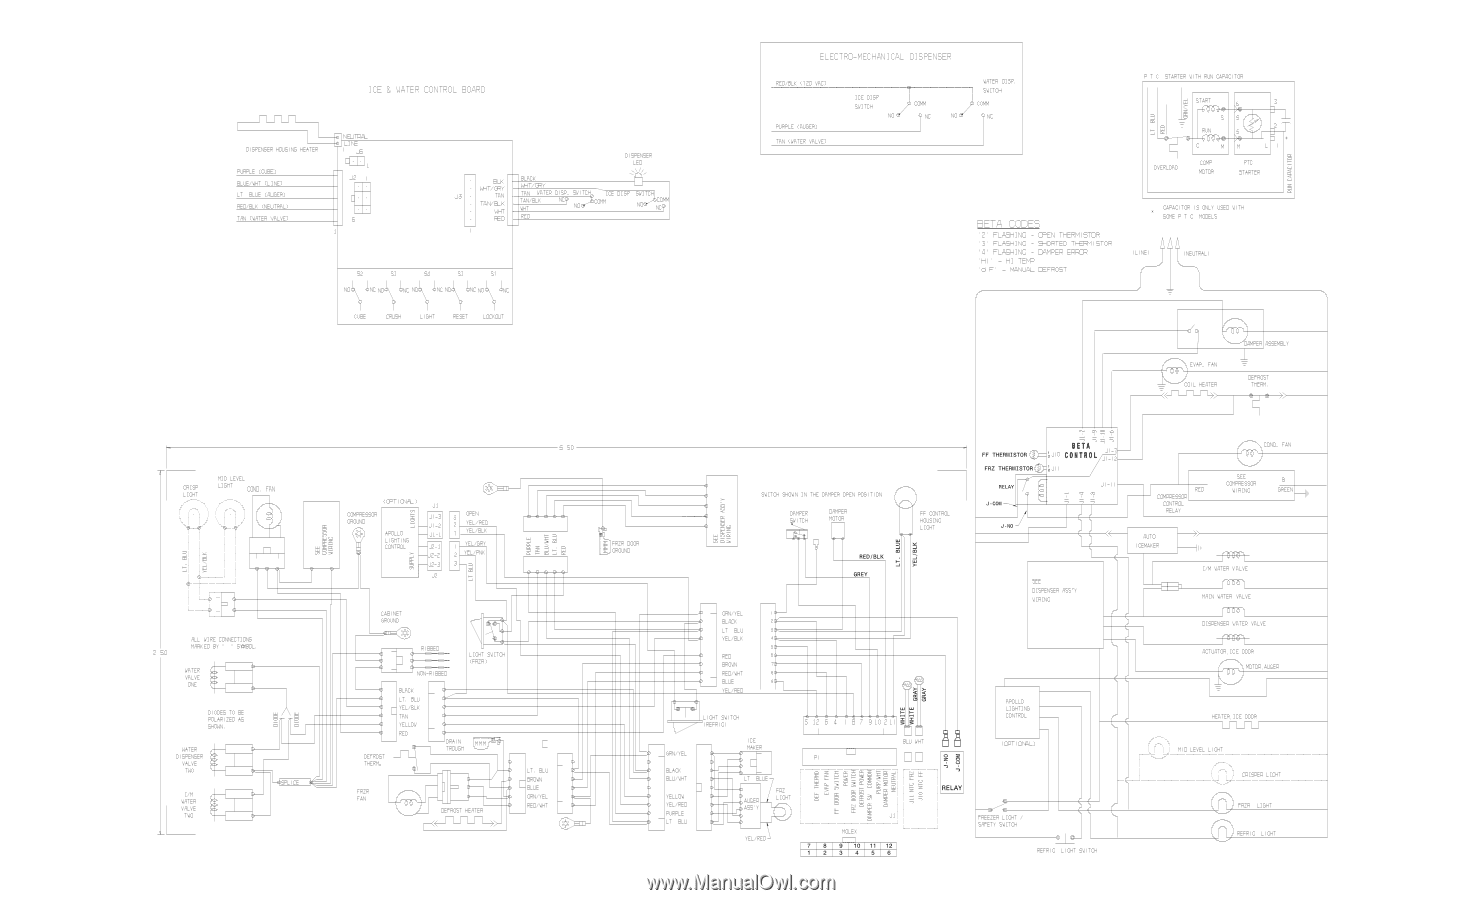 Frigidaire Ffhs2611lw Wiring Diagram All Languages Page 1 Valve Baseline 4 5 Button Beta 242077001